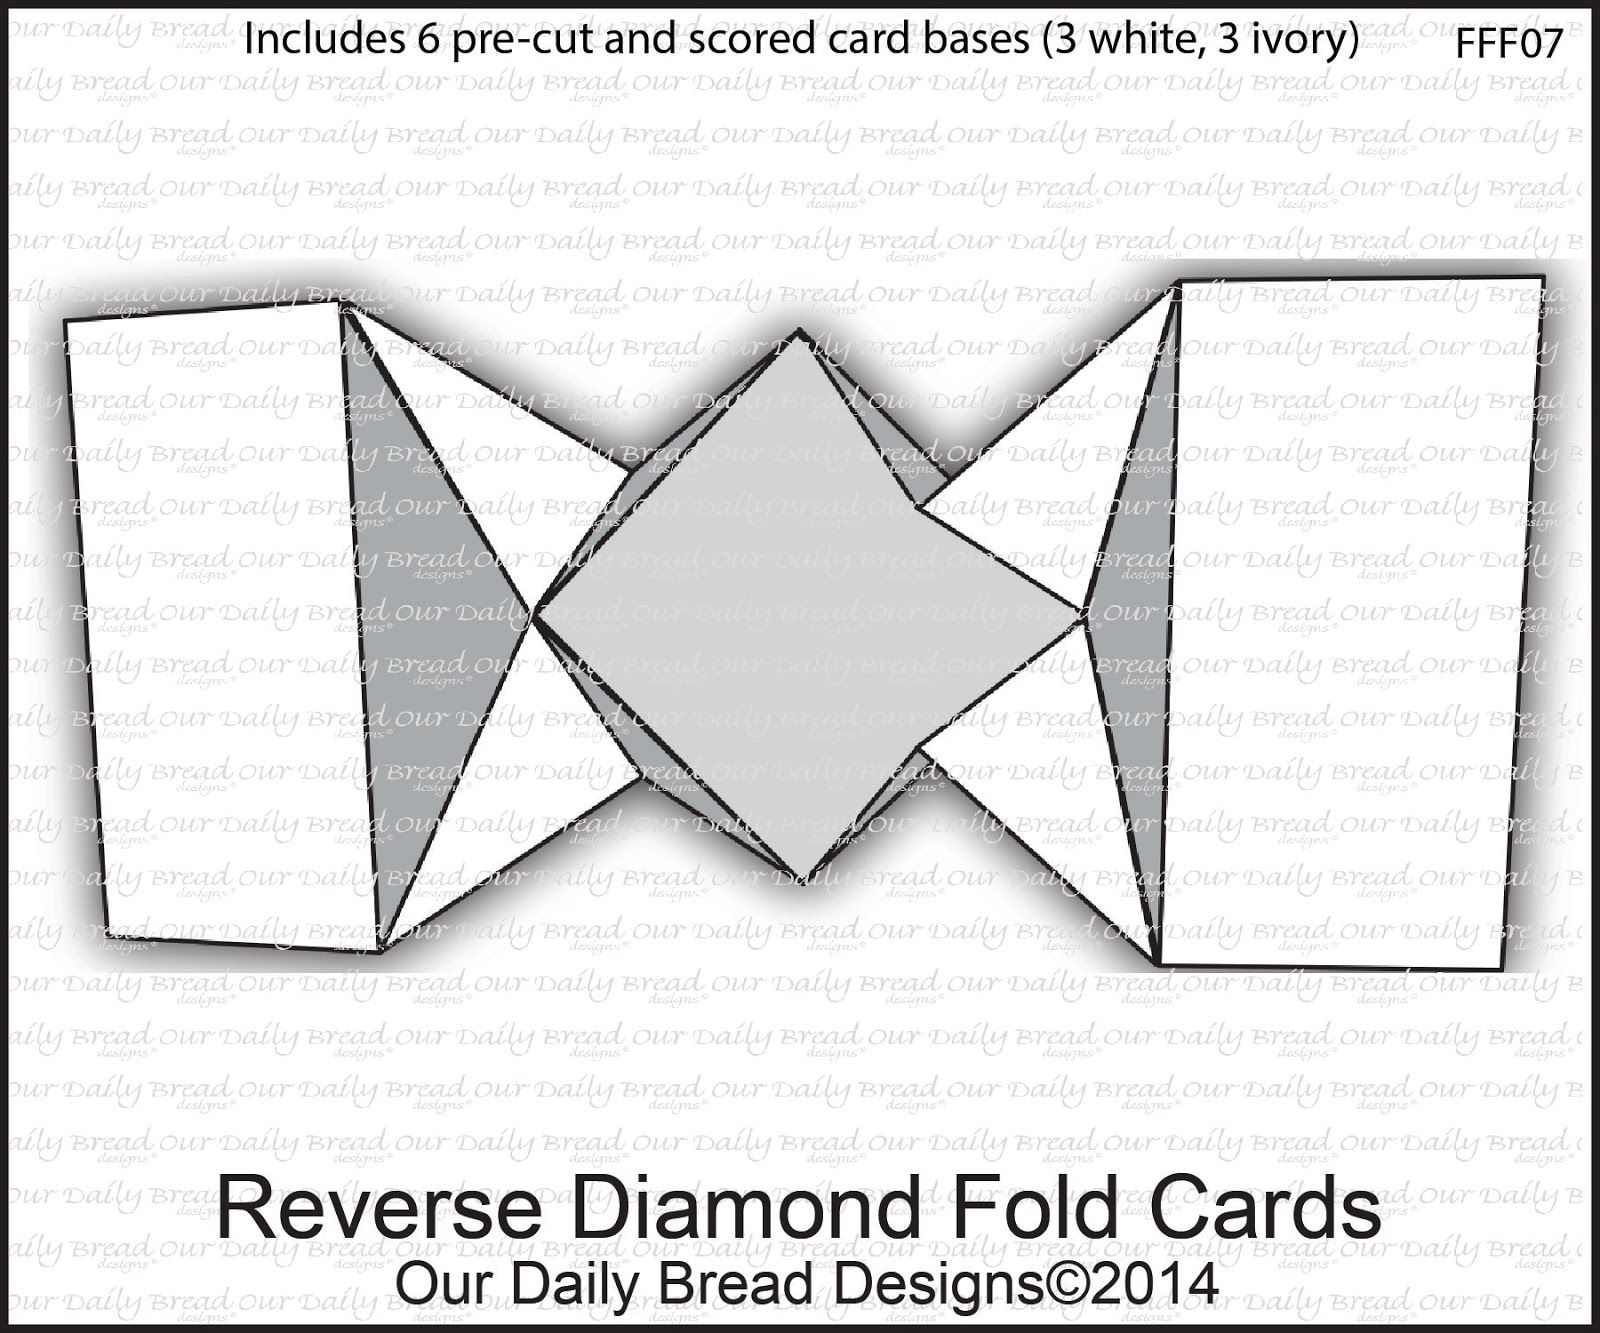 Our Daily Bread Designs Reverse Diamond Fold Cards - Includes 6 pre-cut and scored card bases (3 White, 3 Ivory)